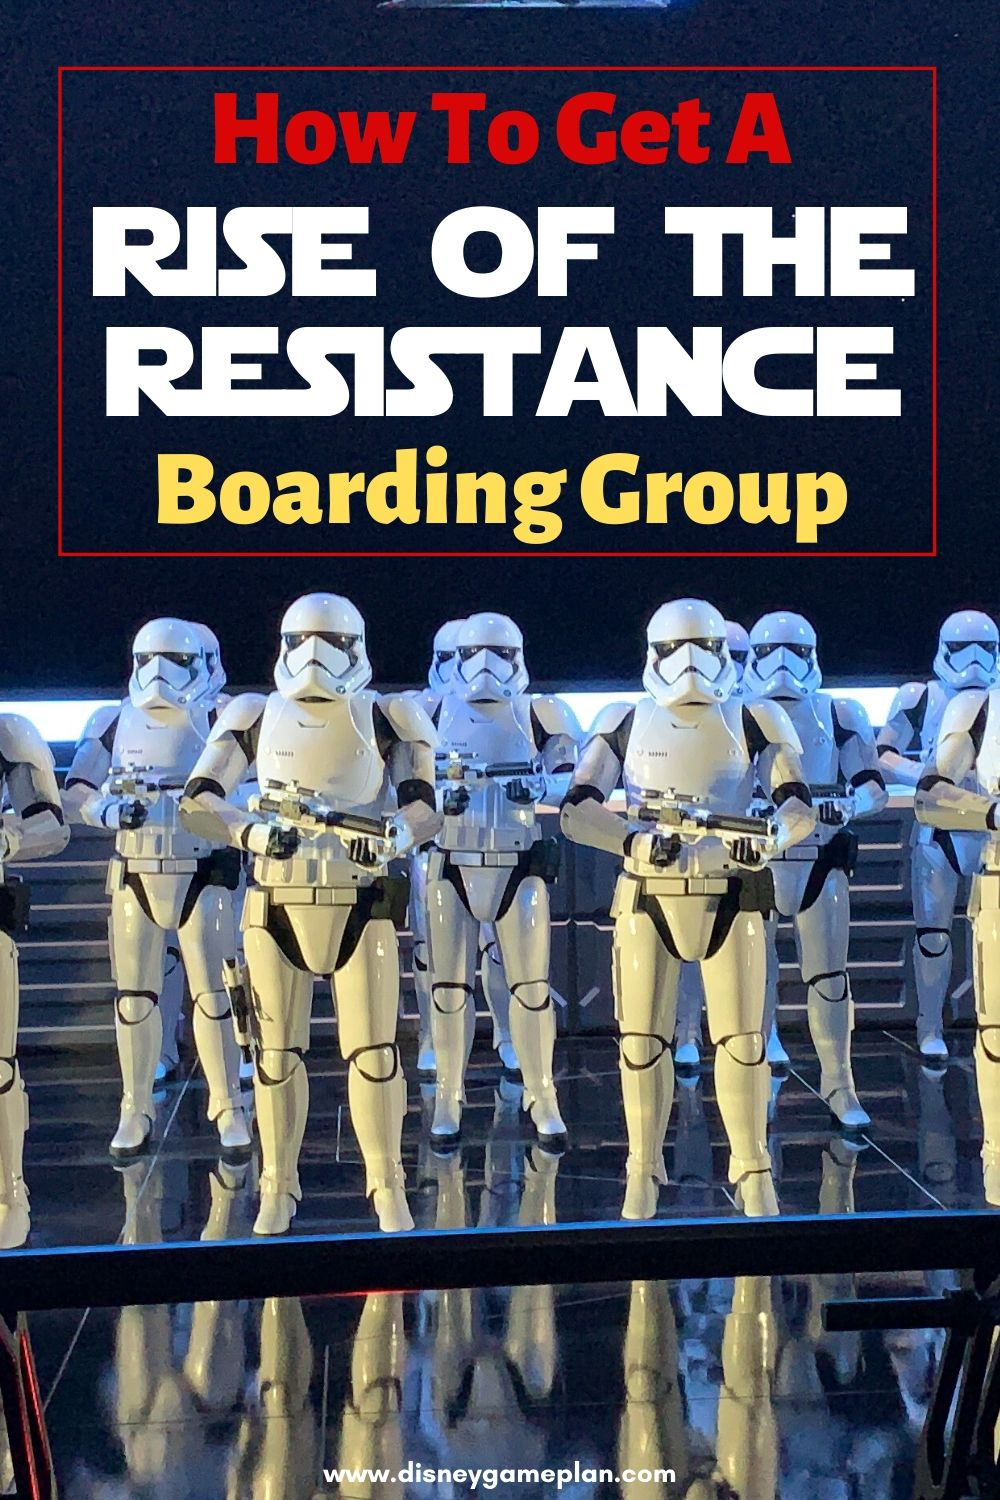 Want to experience the most popular ride at Walt Disney World? Here are my tips for How To Get A Rise Of The Resistance Boarding Group. These tips and tricks to help you secure a coveted boarding pass for Rise of the Resistance located in Hollywood Studios in Walt Disney World. This Disney World Attraction is a definite must-do for Star Wars fans. #riseoftheresistance #galaxysedge #disneyworldtips